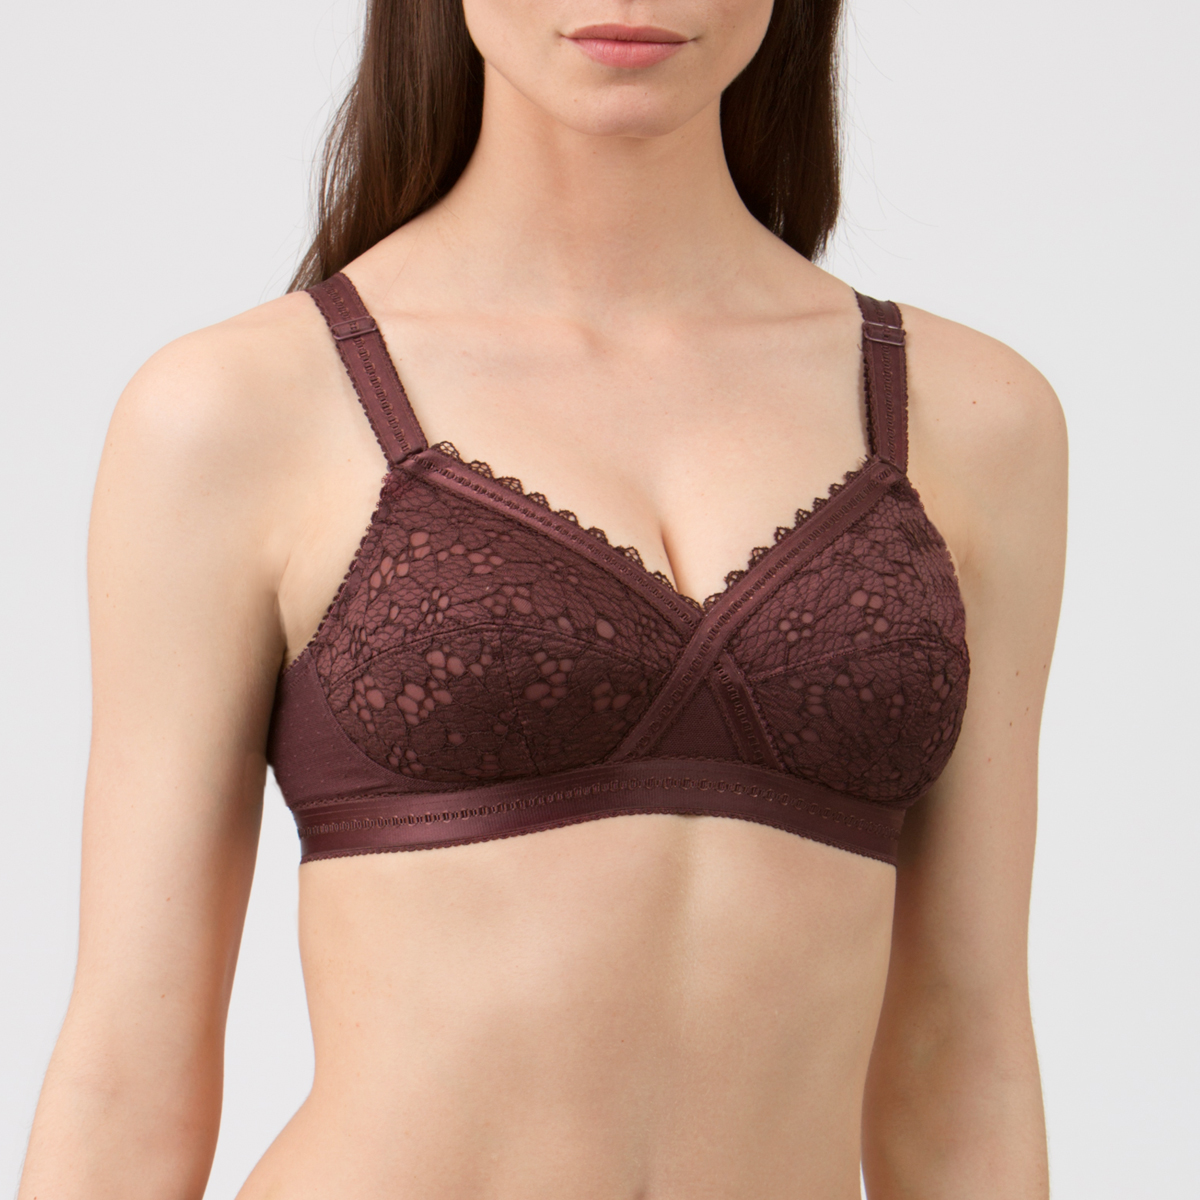 Reggiseno senza ferretto marrone - Criss Cross Pizzo - PLAYTEX